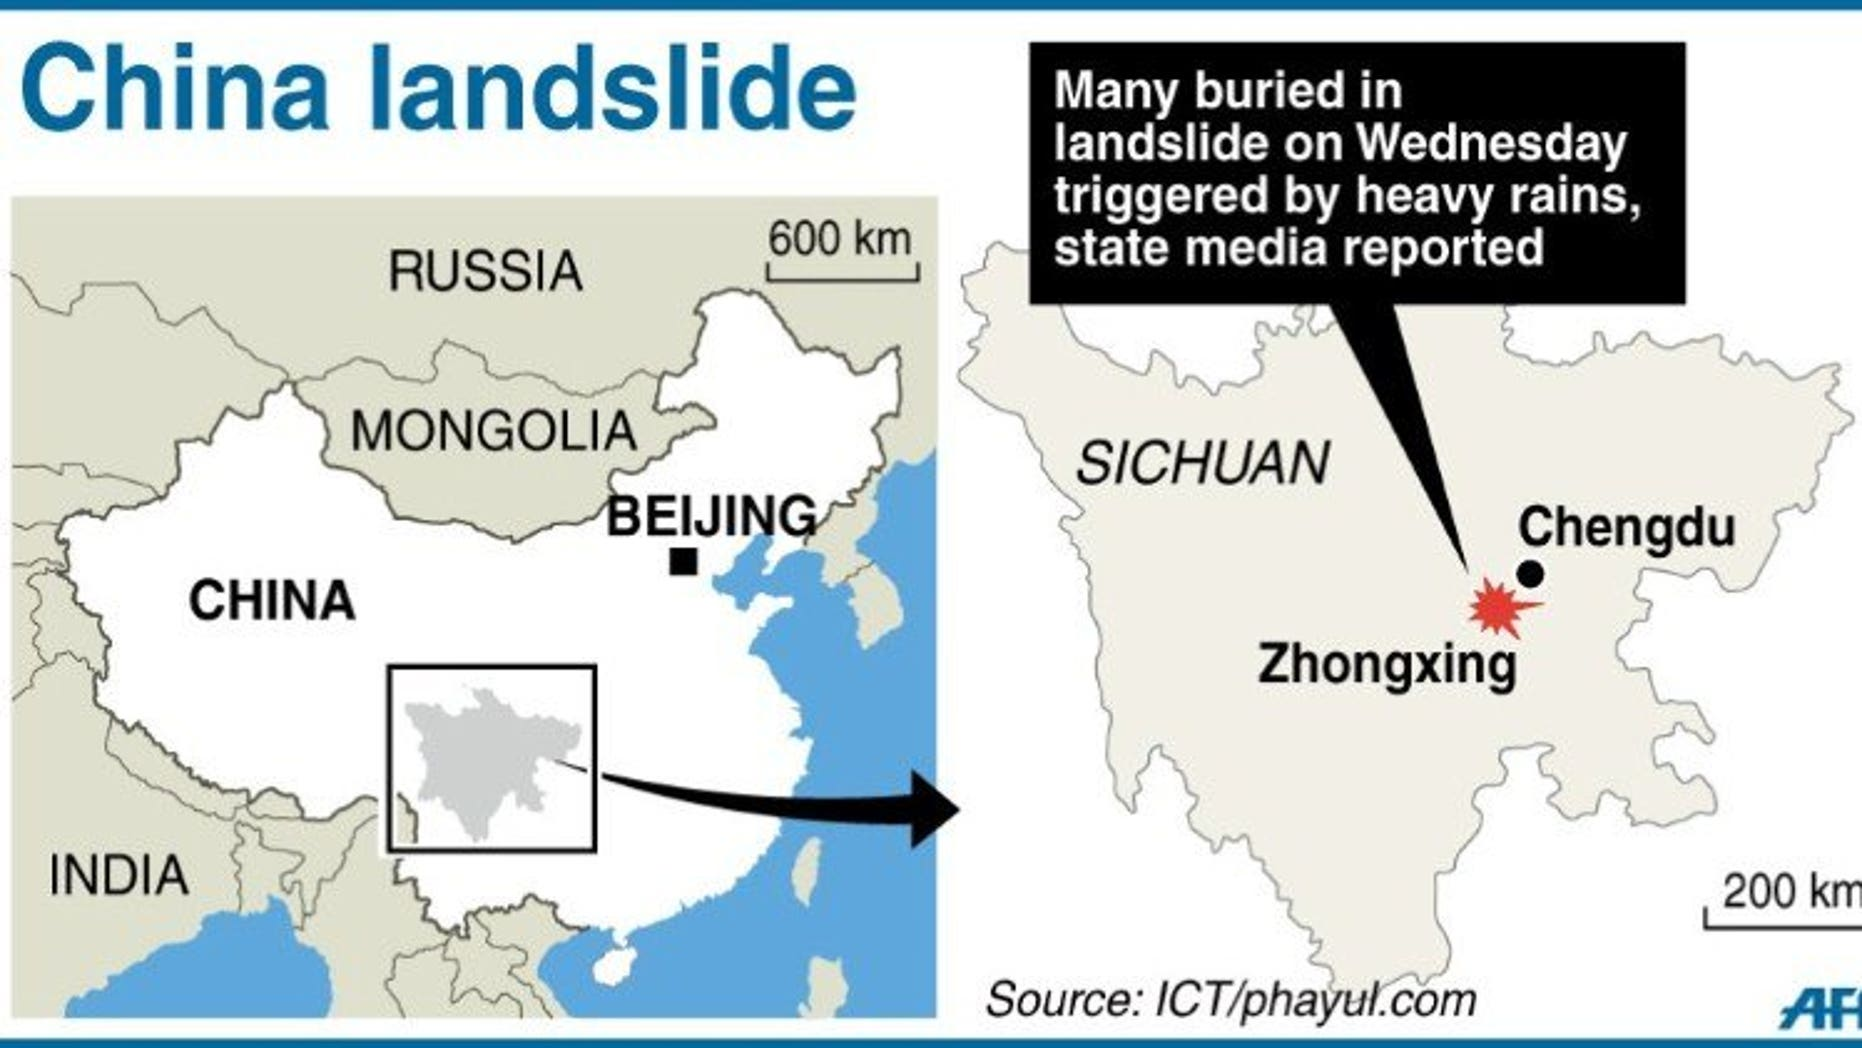 Graphic map locating Zhongxing in China's Sichuan province where 30 - 40 people have been buried by a landslide Wednesday, according to state media.